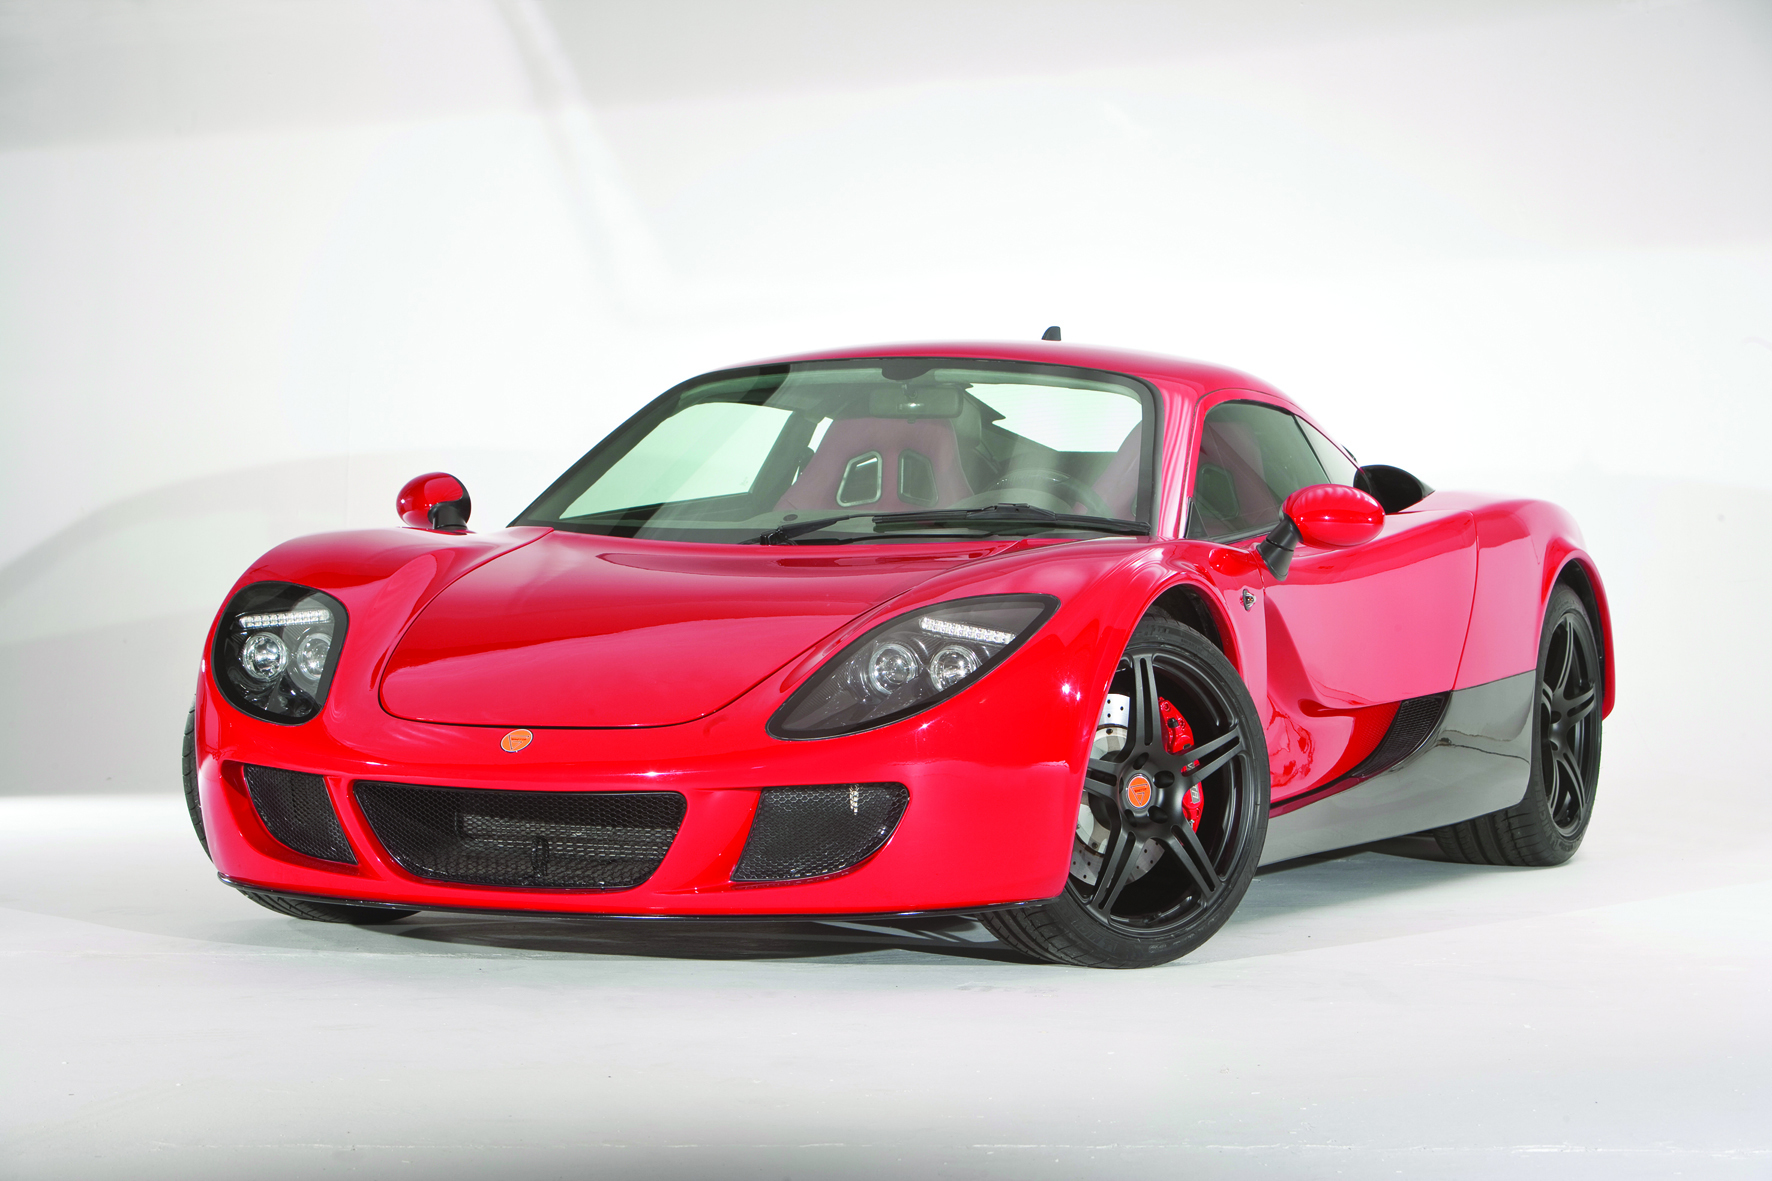 ginetta g60 brings mid engine sports car to its range slideshow. Black Bedroom Furniture Sets. Home Design Ideas